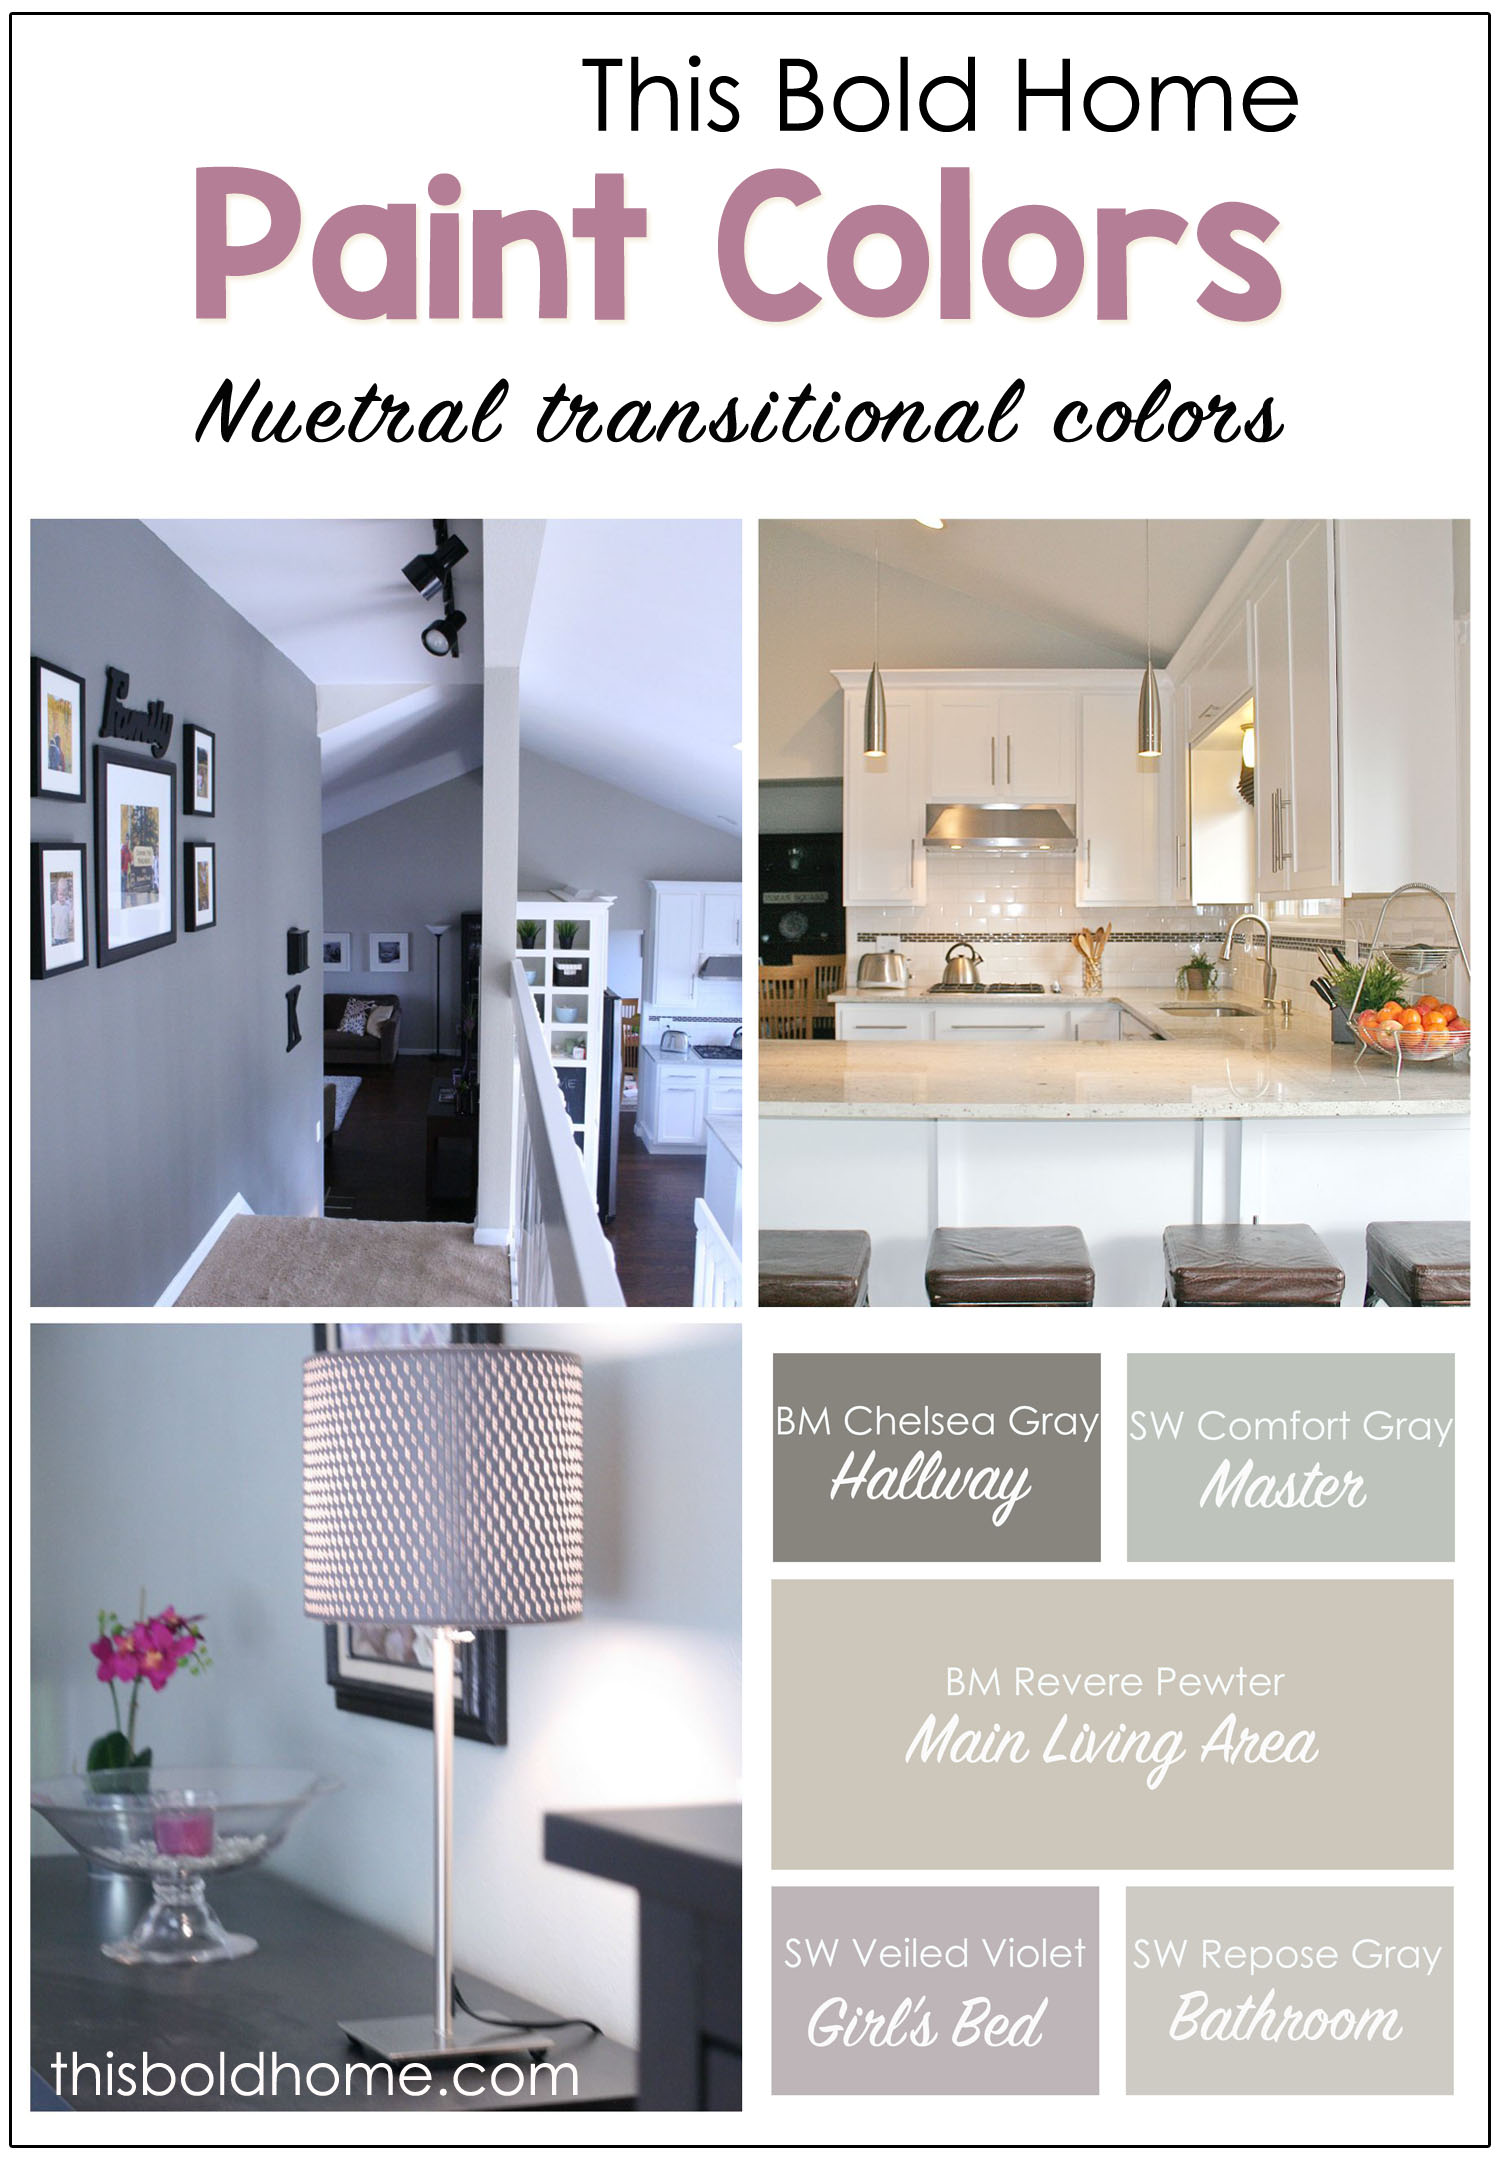 Revere pewter coordinating paint colors this bold home Bold house colors